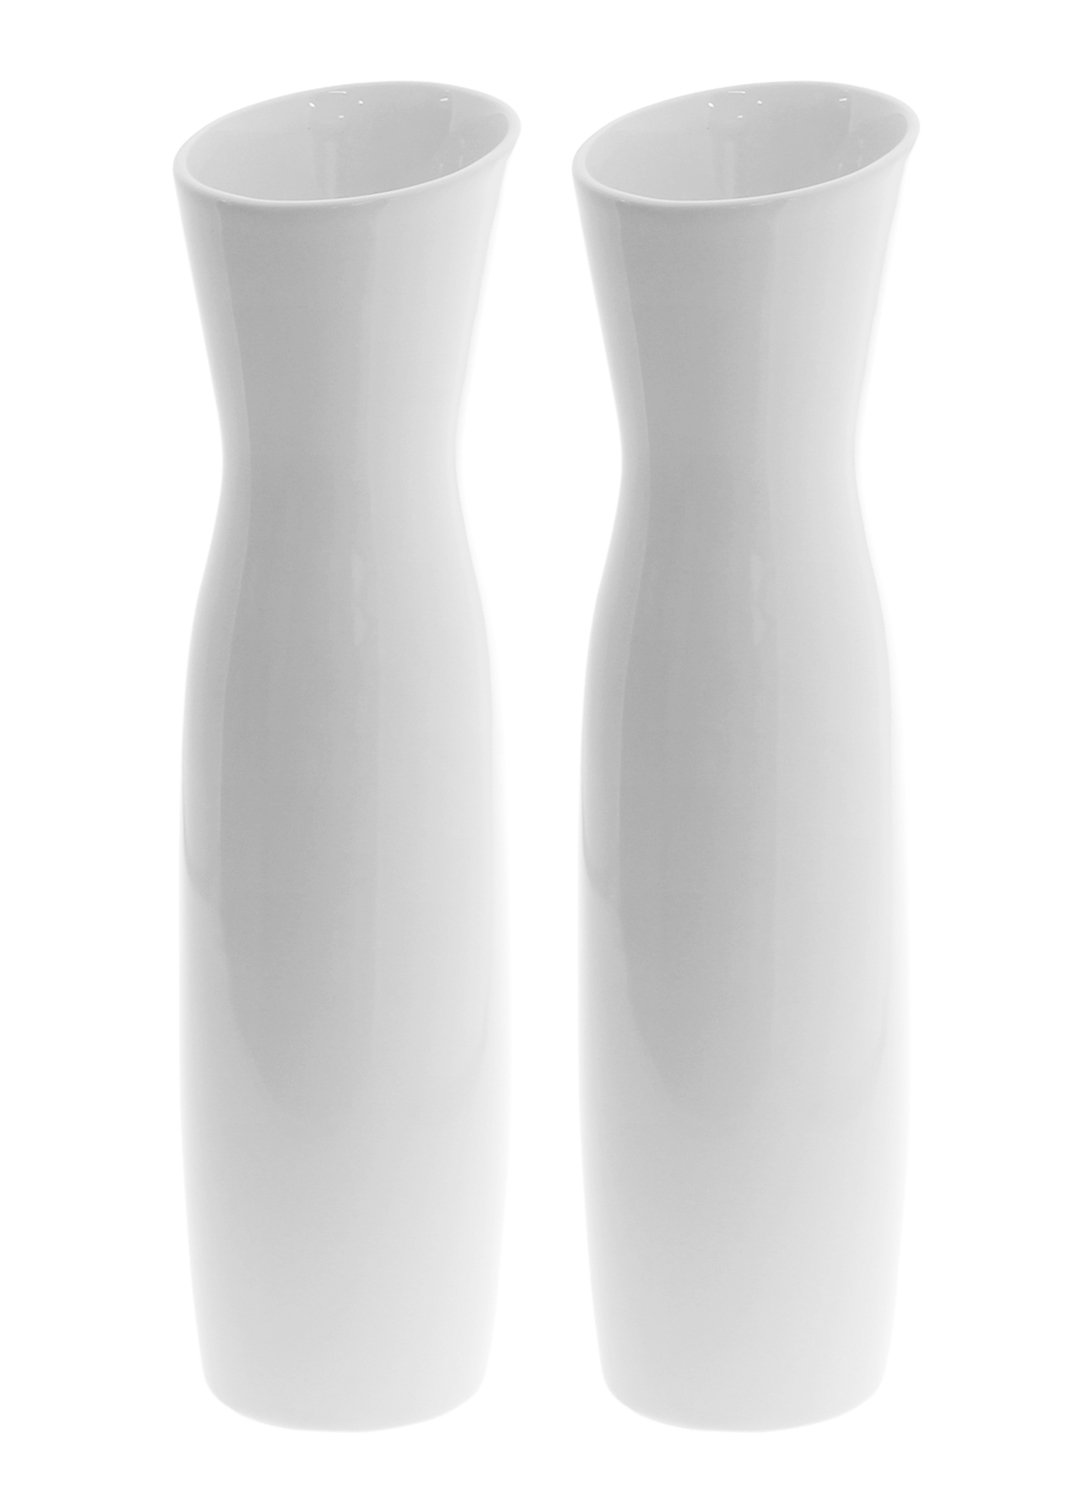 "JustNile 11.8 "" Tall Modern Elegant Looking Decorative Vases Ideal For Wedding Parties Receptions Centerpiece, Front Porch Living Room Kitchen Home Décor - Set of 2, White - [ Elegant, Minimalist Tulip Looking Vase ] - Classic, modern simplistic design, the flower petal opening makes this set easy to use and a great presentation to be displayed on your tabletop. [ Smooth, Clean Finish ] - To distinct from the ordinary vases on the market, we've made these elegant, smoothly finished vases for you to decorate your beloved bouquet or a single rose for your beloved ones. [ Quality Purchase For the Perfect Quantity ] - With this purchase, you do not only get one, but TWO identical modern, classic smoothly made vases. It's always nice to have a pair of vases for your home décor. - vases, kitchen-dining-room-decor, kitchen-dining-room - 51AYfNe9jfL -"